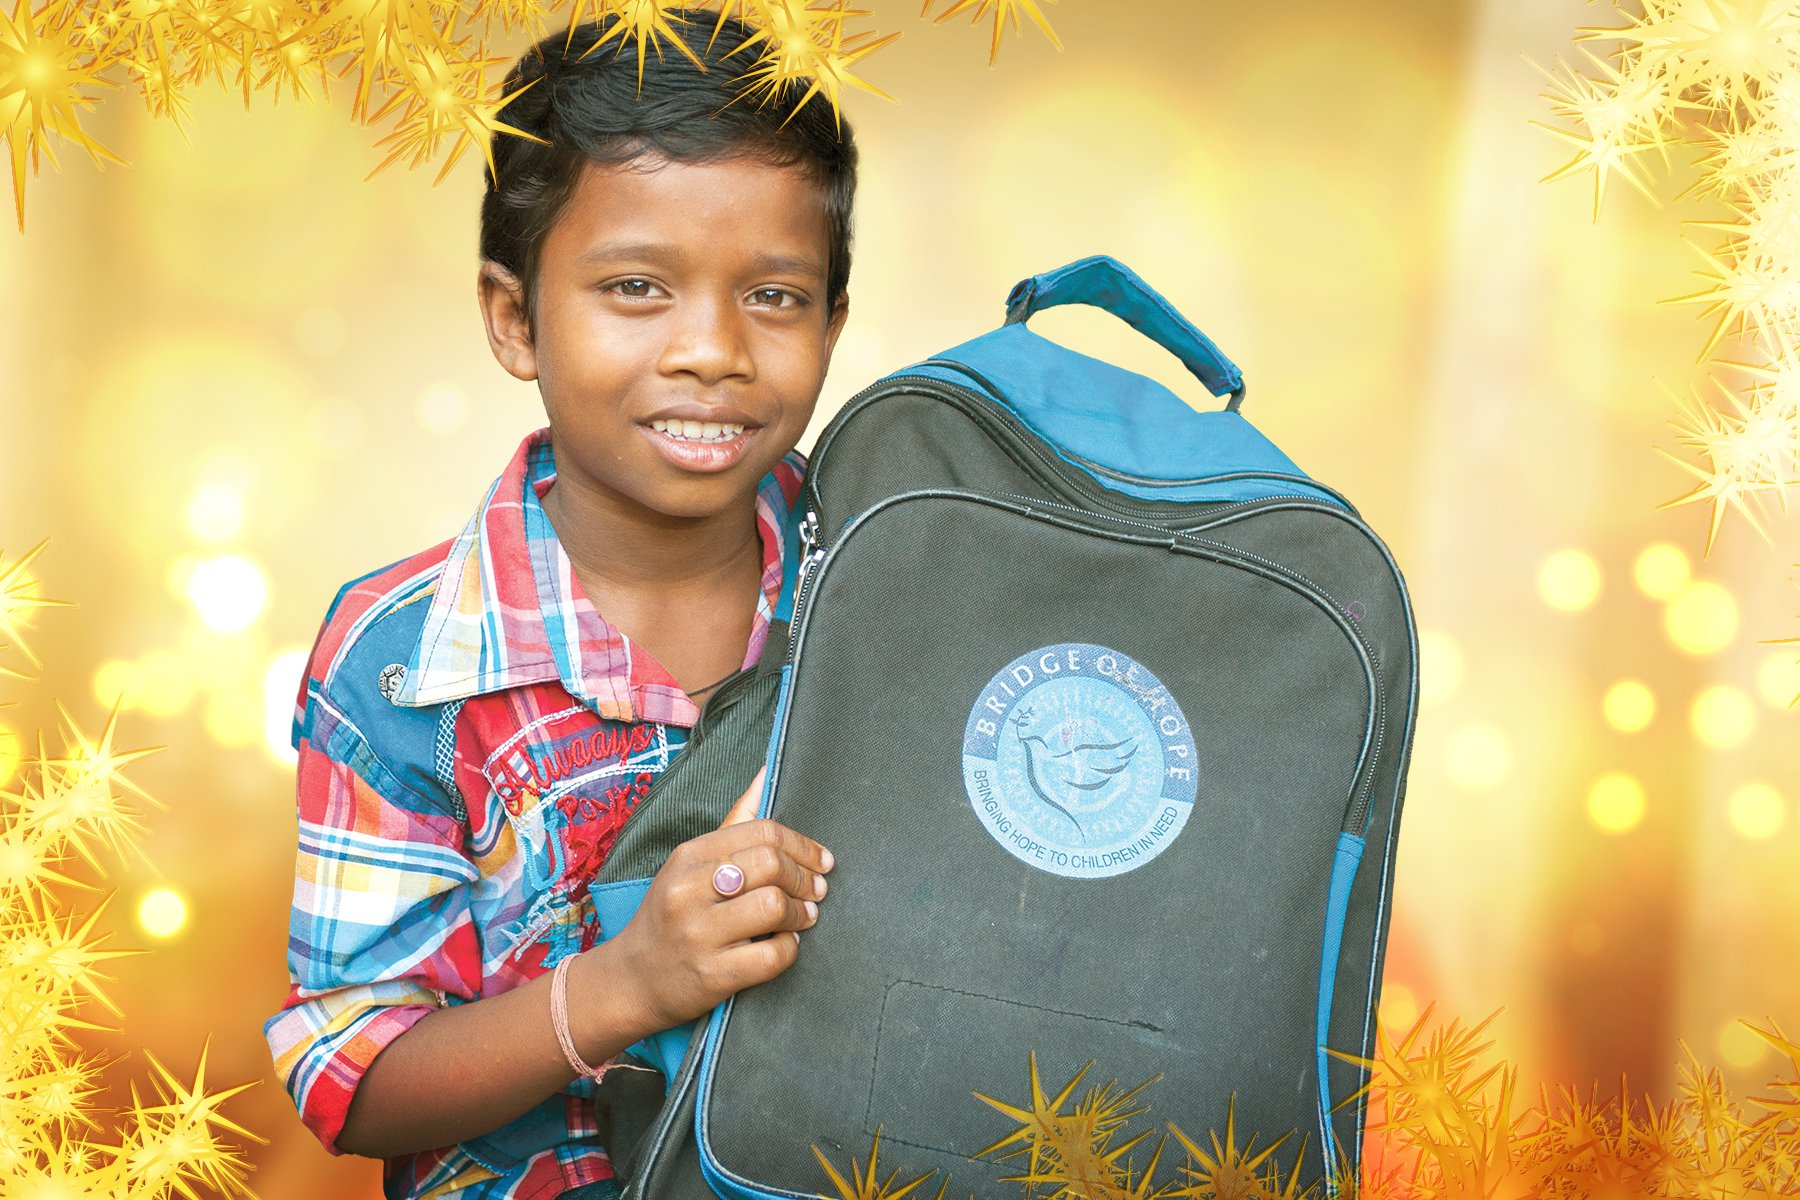 16-14-boy-with-backpack.jpg